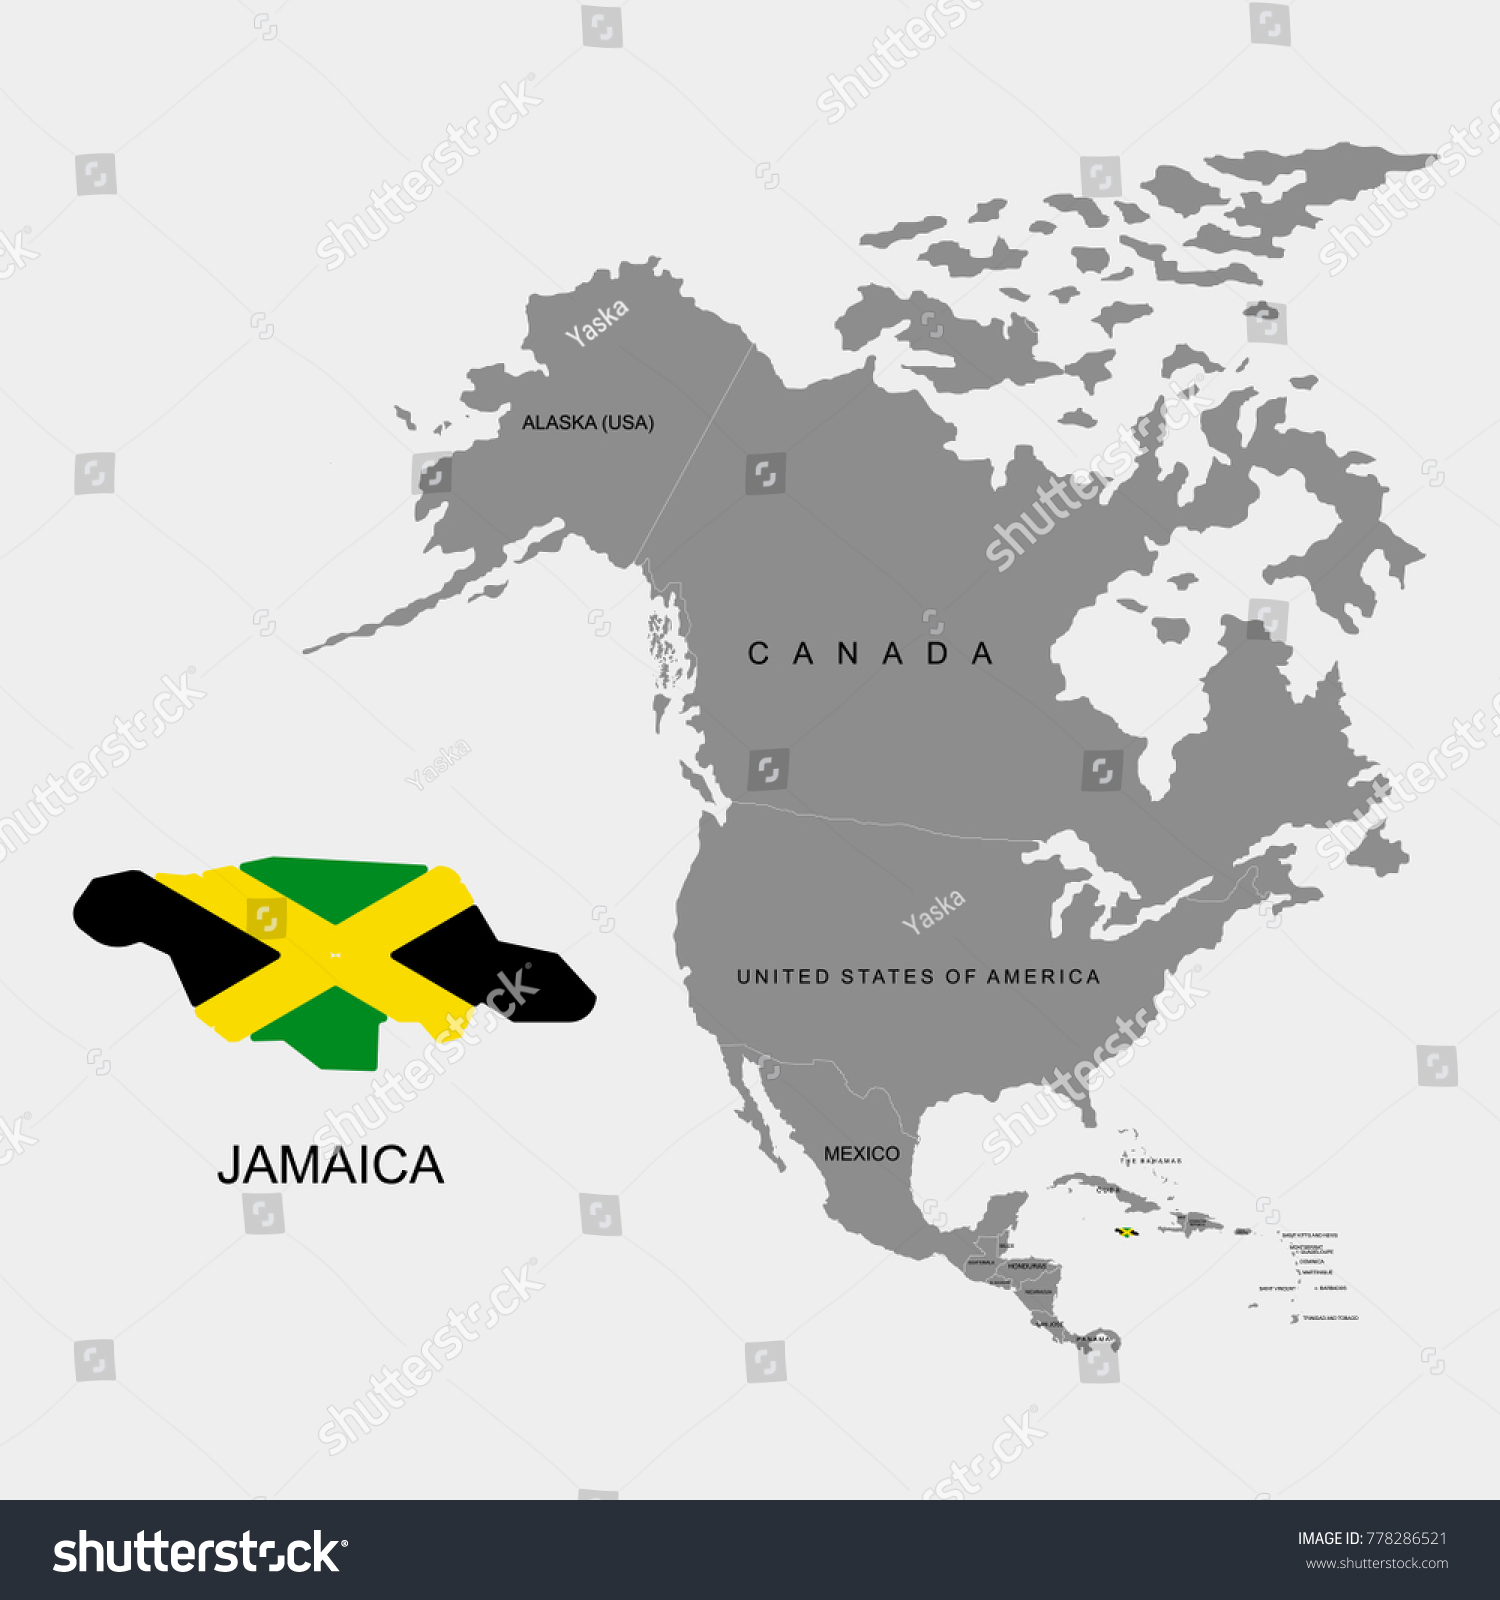 Territory Jamaica On North America Continent Stock Vector (Royalty ...